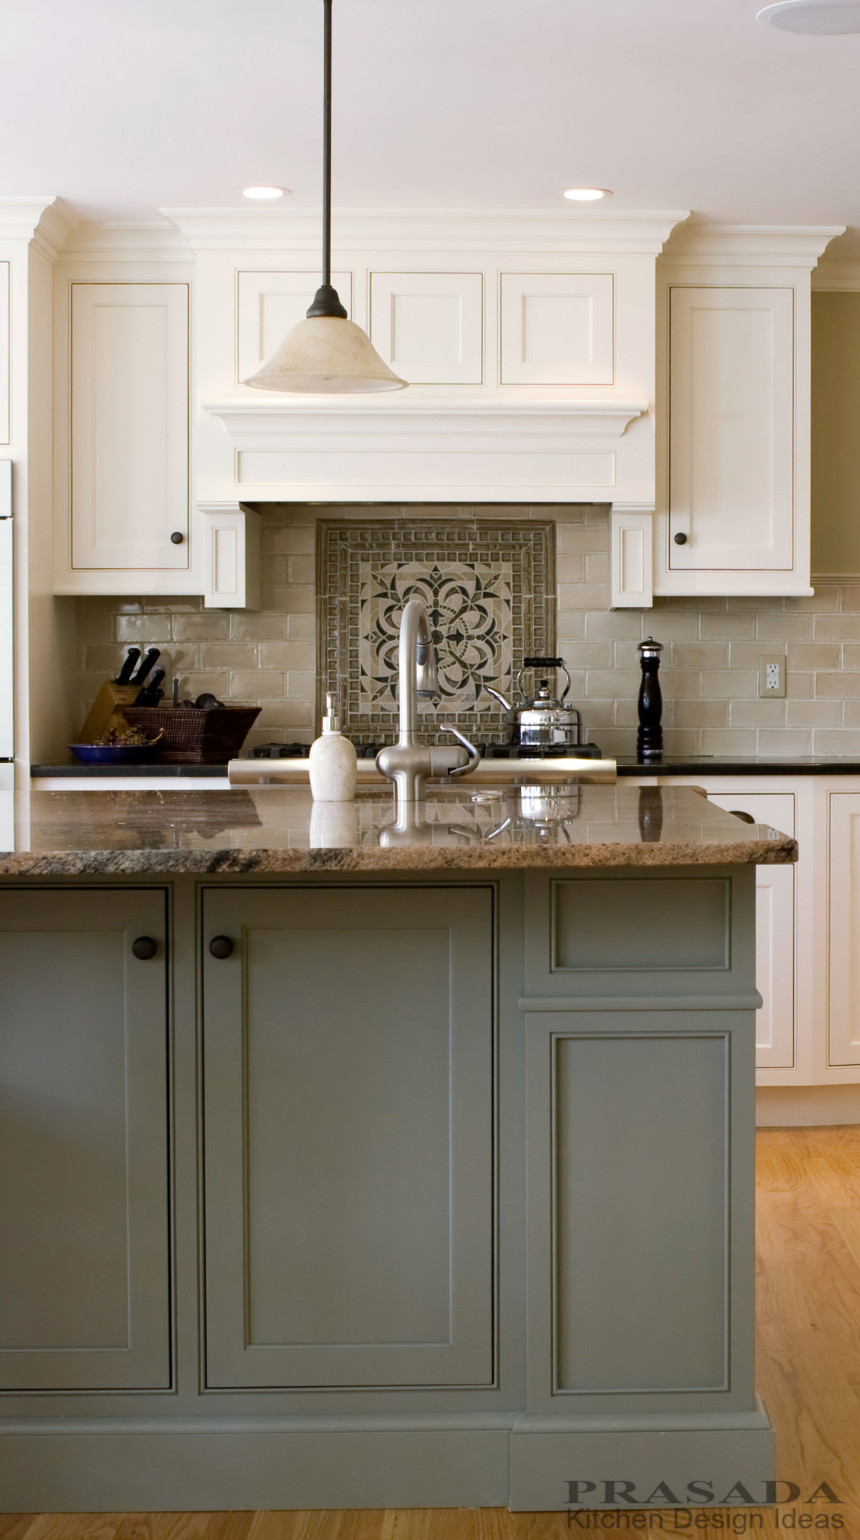 Kitchen Cabinetry Oakville Ontario | PRASADA Kitchens and Fine Cabinetry